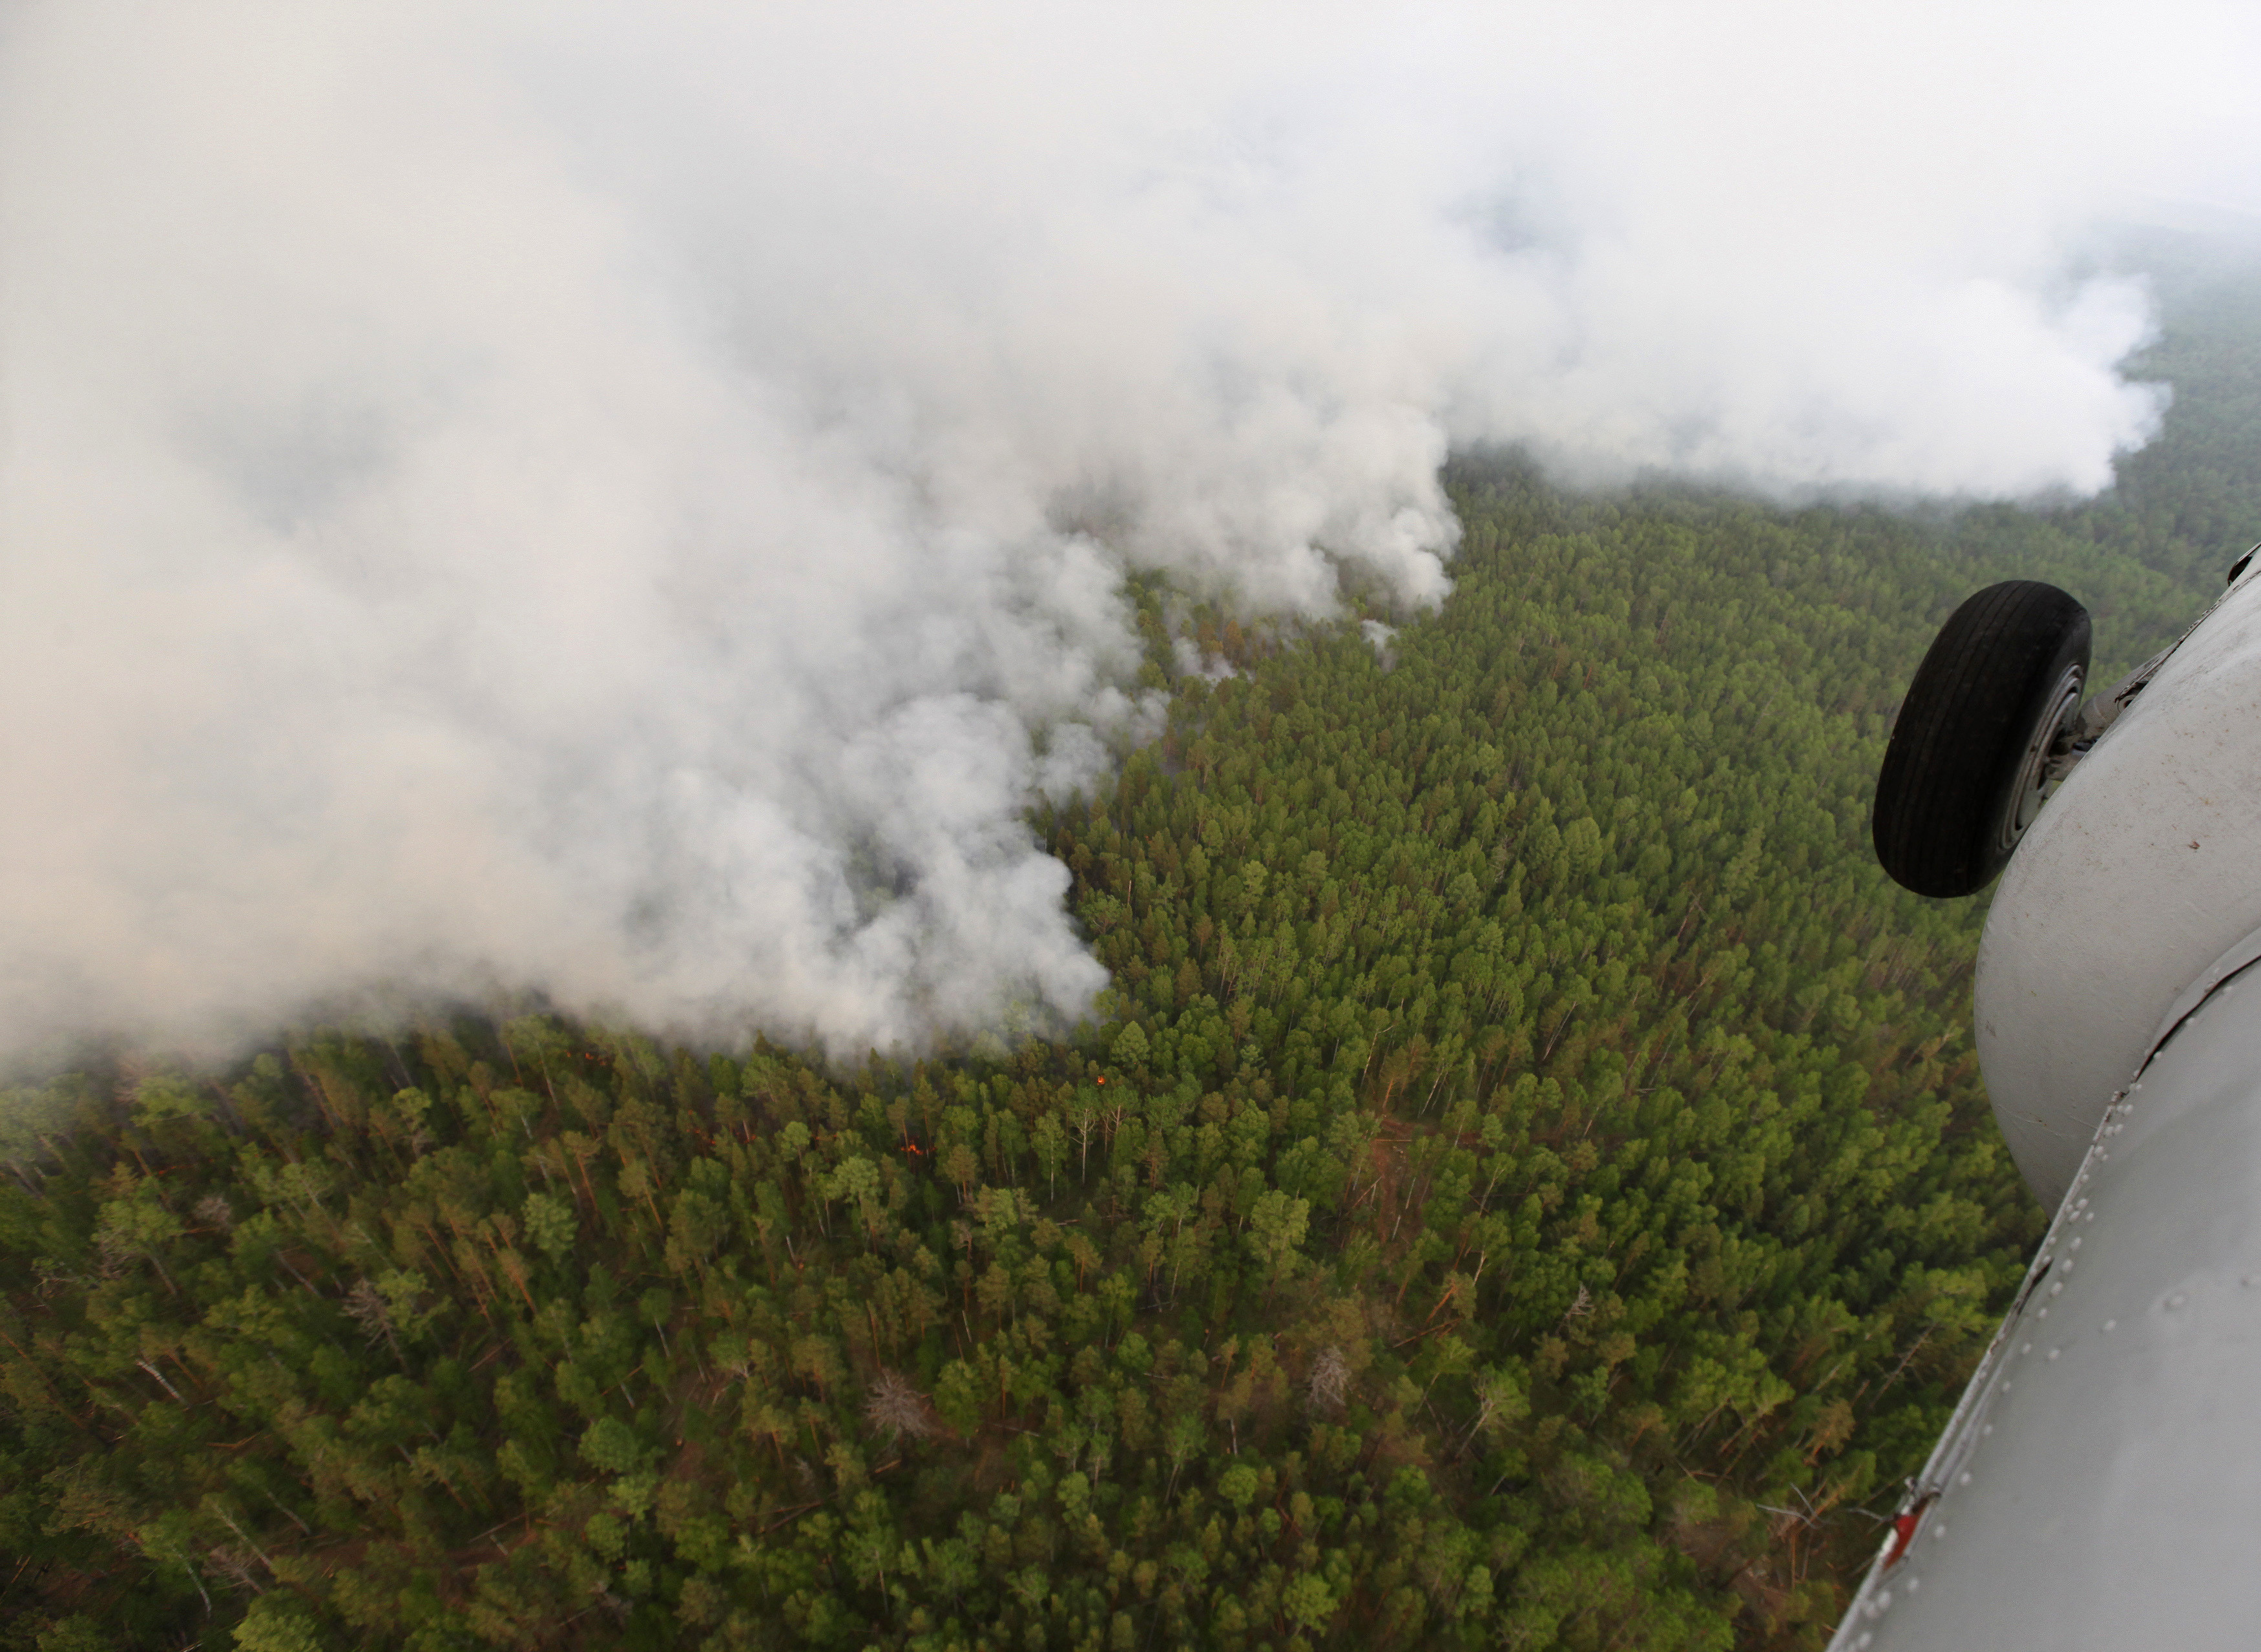 An aerial view shows the Taiga wood burning near the village of Boguchany, about 560 km (348 miles) northeast of Russia's Siberian city of Krasnoyarsk, June 2, 2011. Dry, hot weather, dry thunder storms and human factors influenced the distribution of the fires in Siberia, according to Emergencies Ministry members. Picture taken June 2, 2011. REUTERS/Ilya Naymushin (RUSSIA - Tags: ENVIRONMENT DISASTER IMAGES OF THE DAY) - GM1E7641BIG01